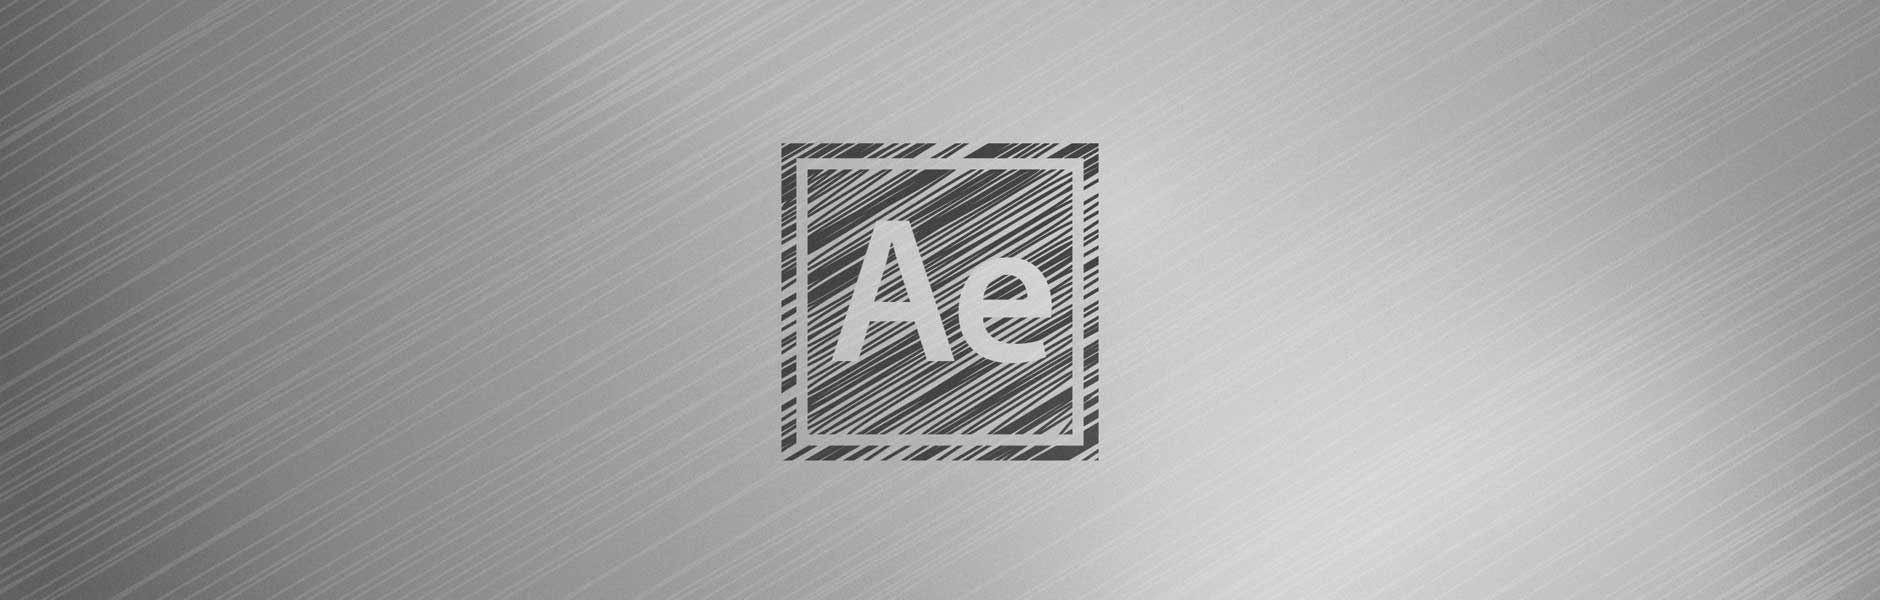 After effects feature image